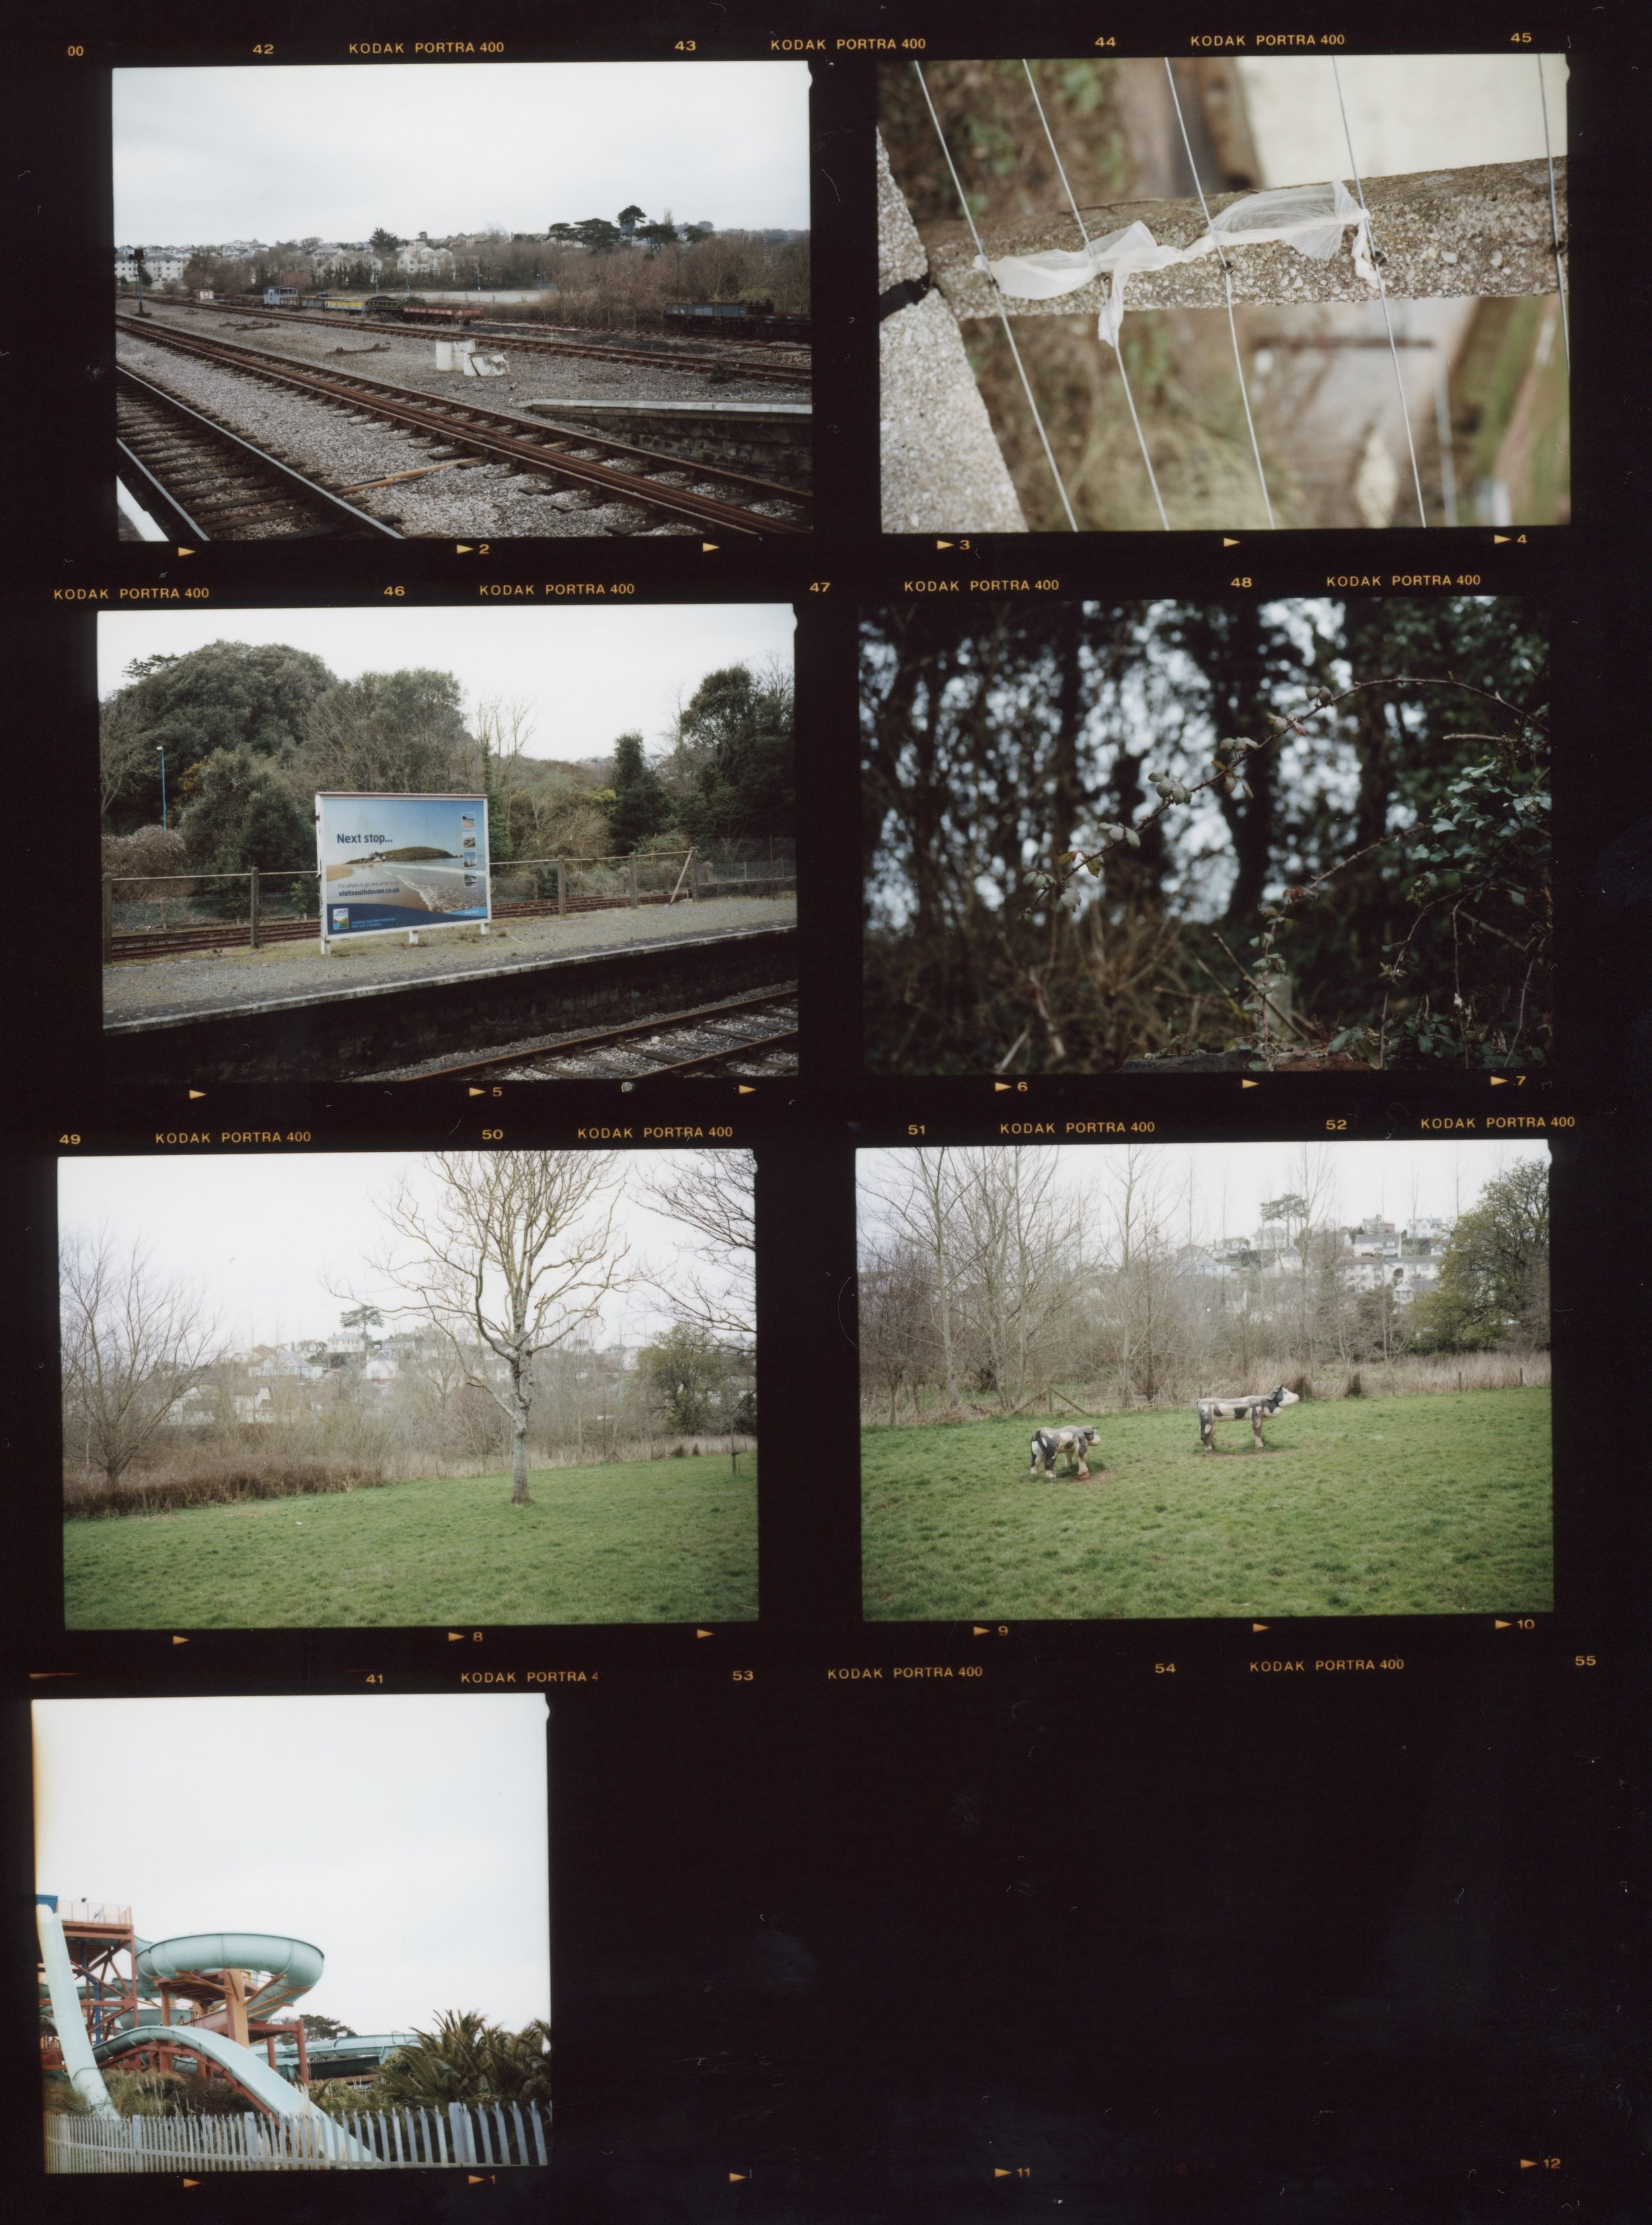 Contact Sheet #2, Anthony Prothero, 2018